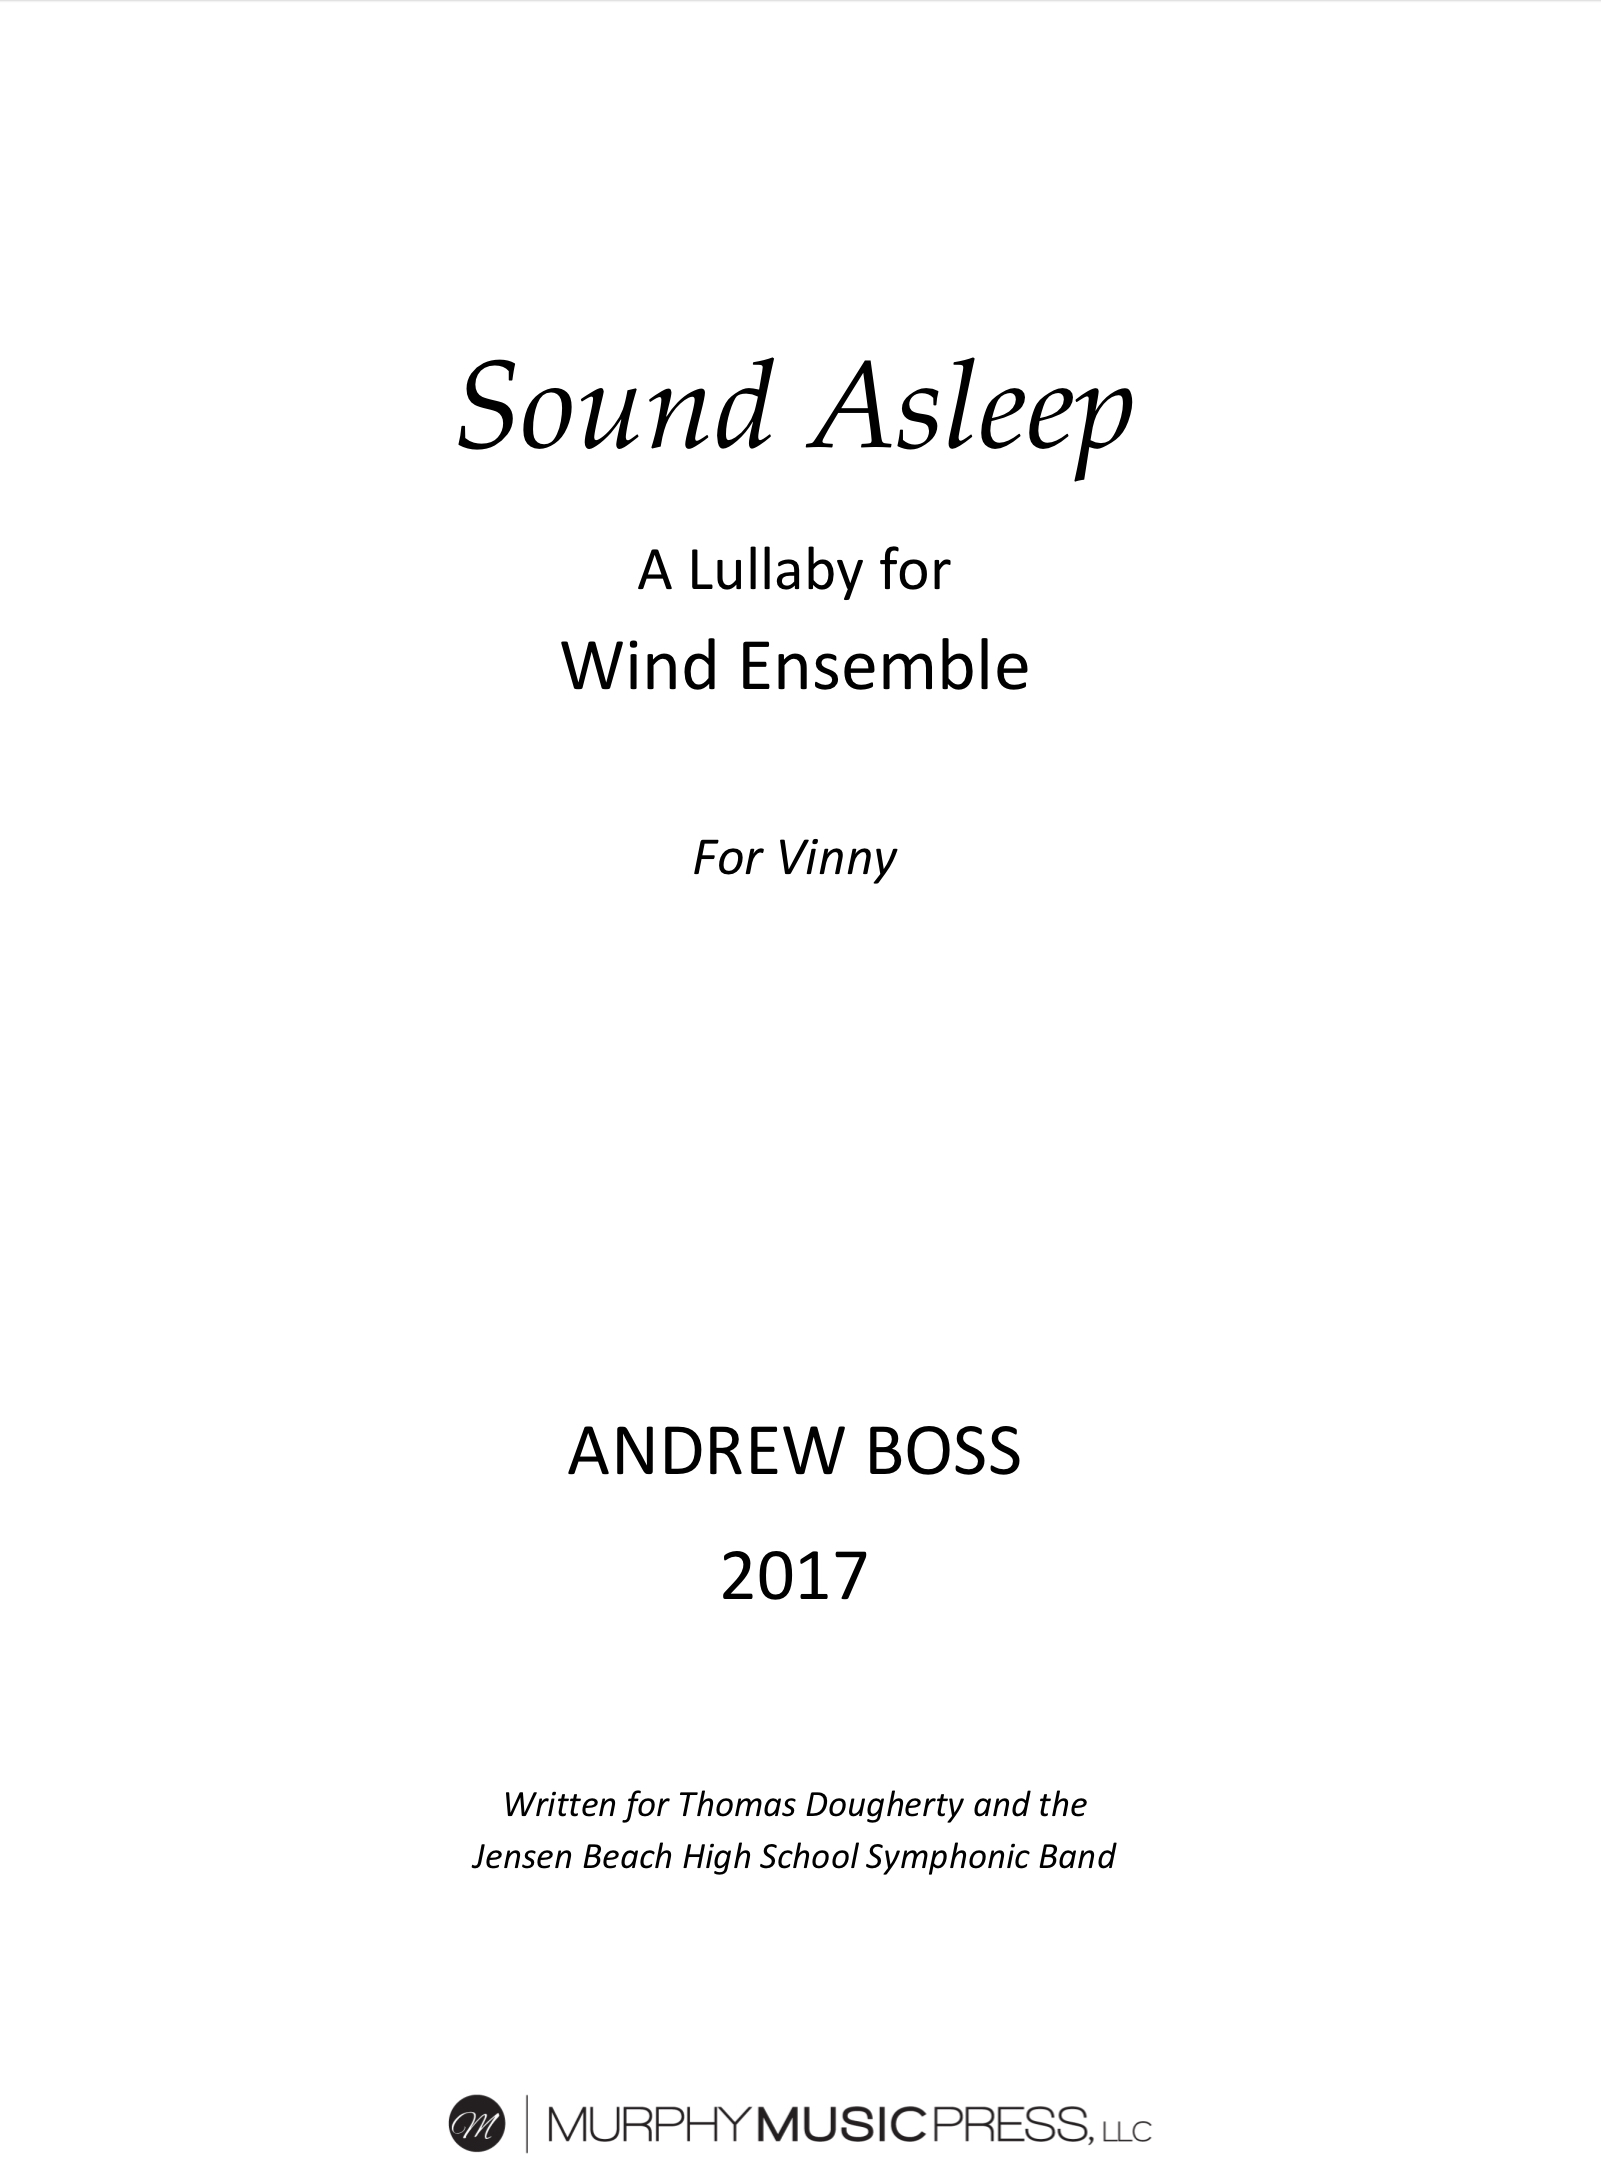 Sound Asleep (PDF Version) by Andrew Boss